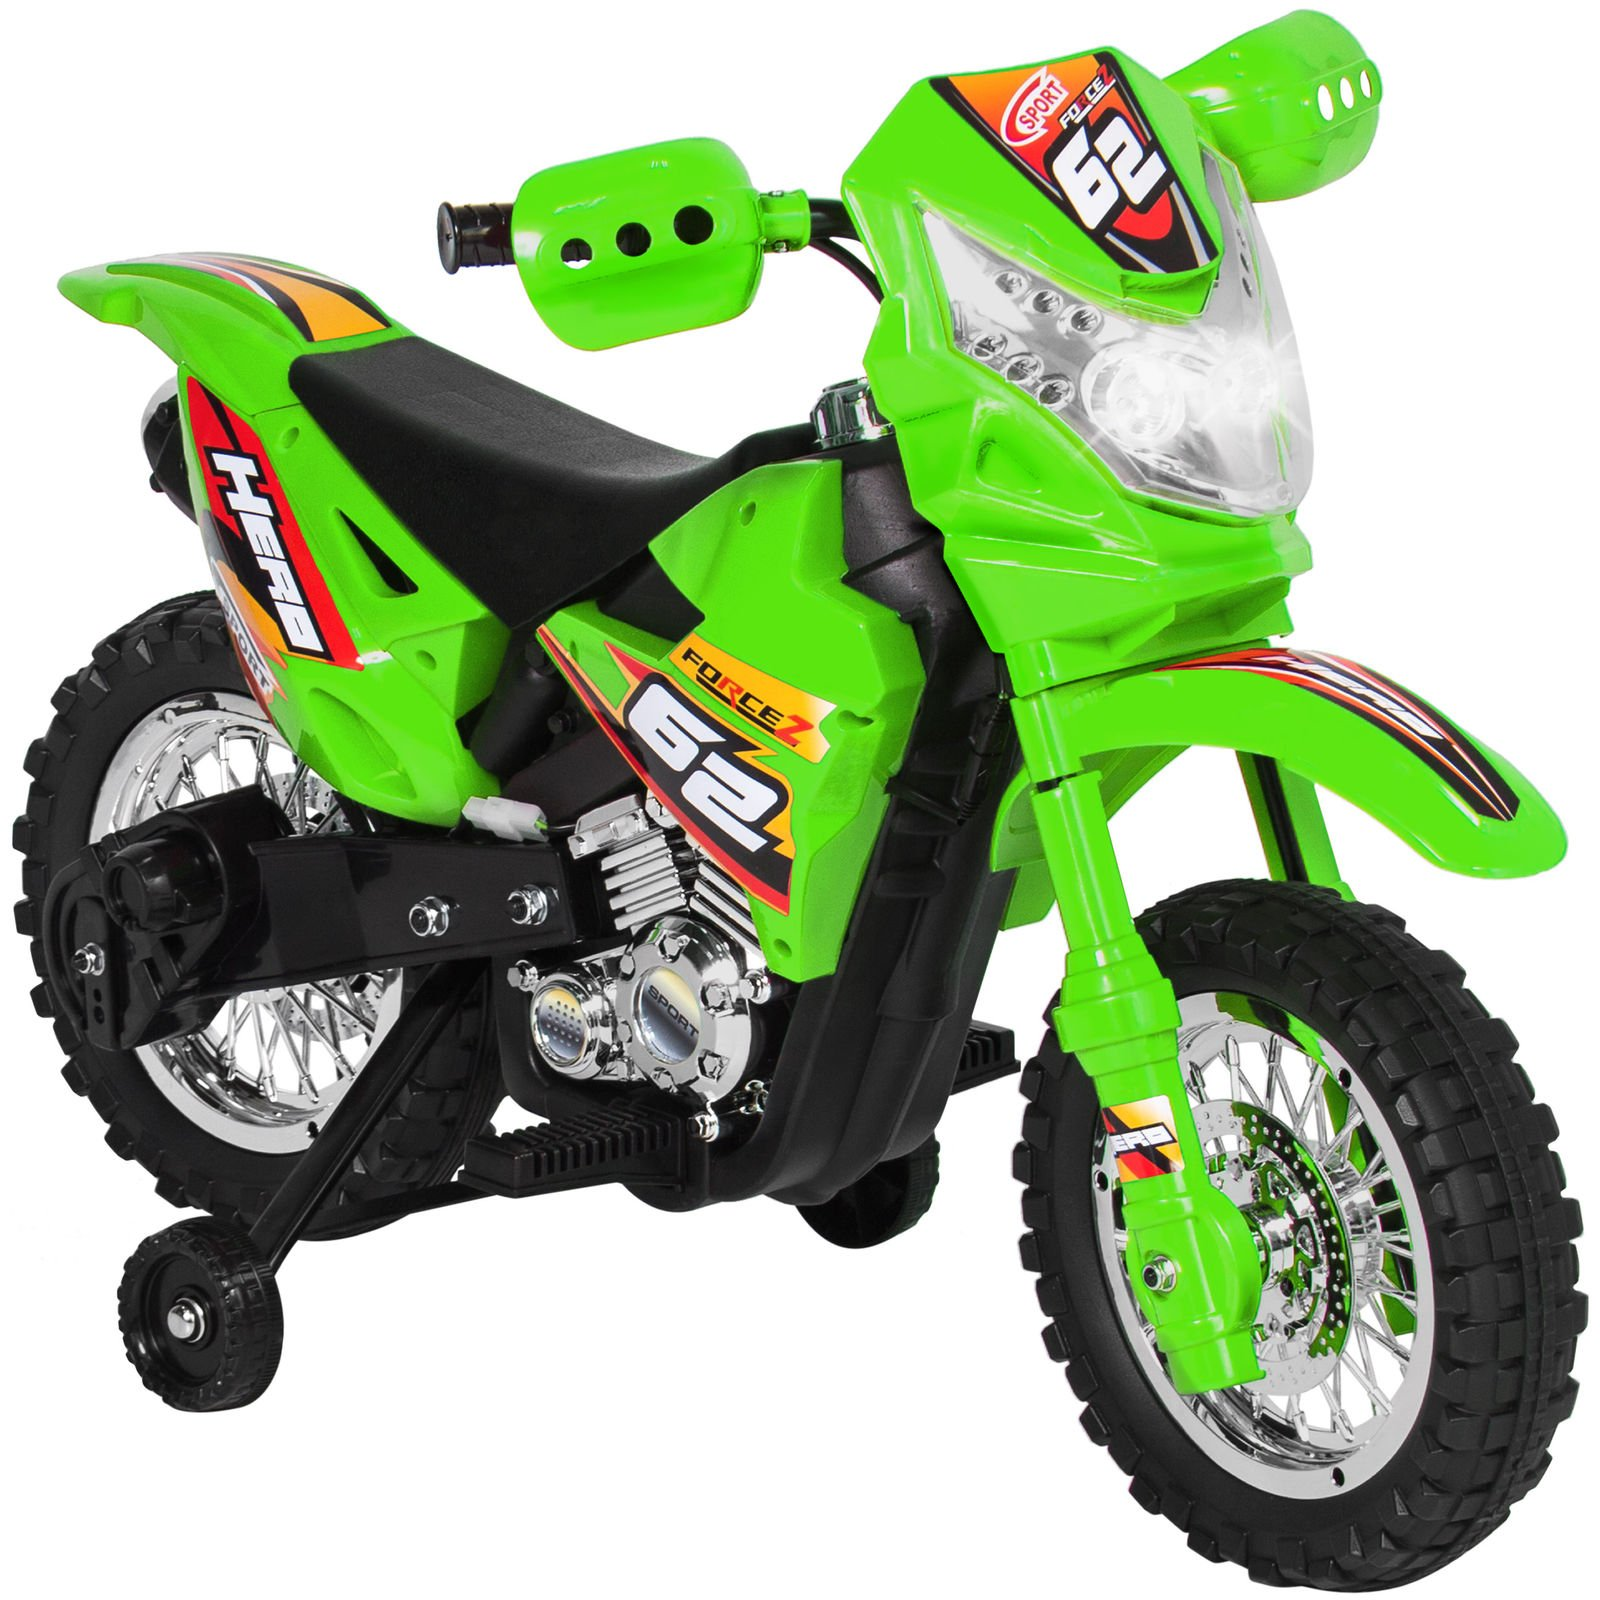 Marketworldcup- 6V Electric Kids Ride On Motorcycle Dirt Bike W/Training Wheels- Green